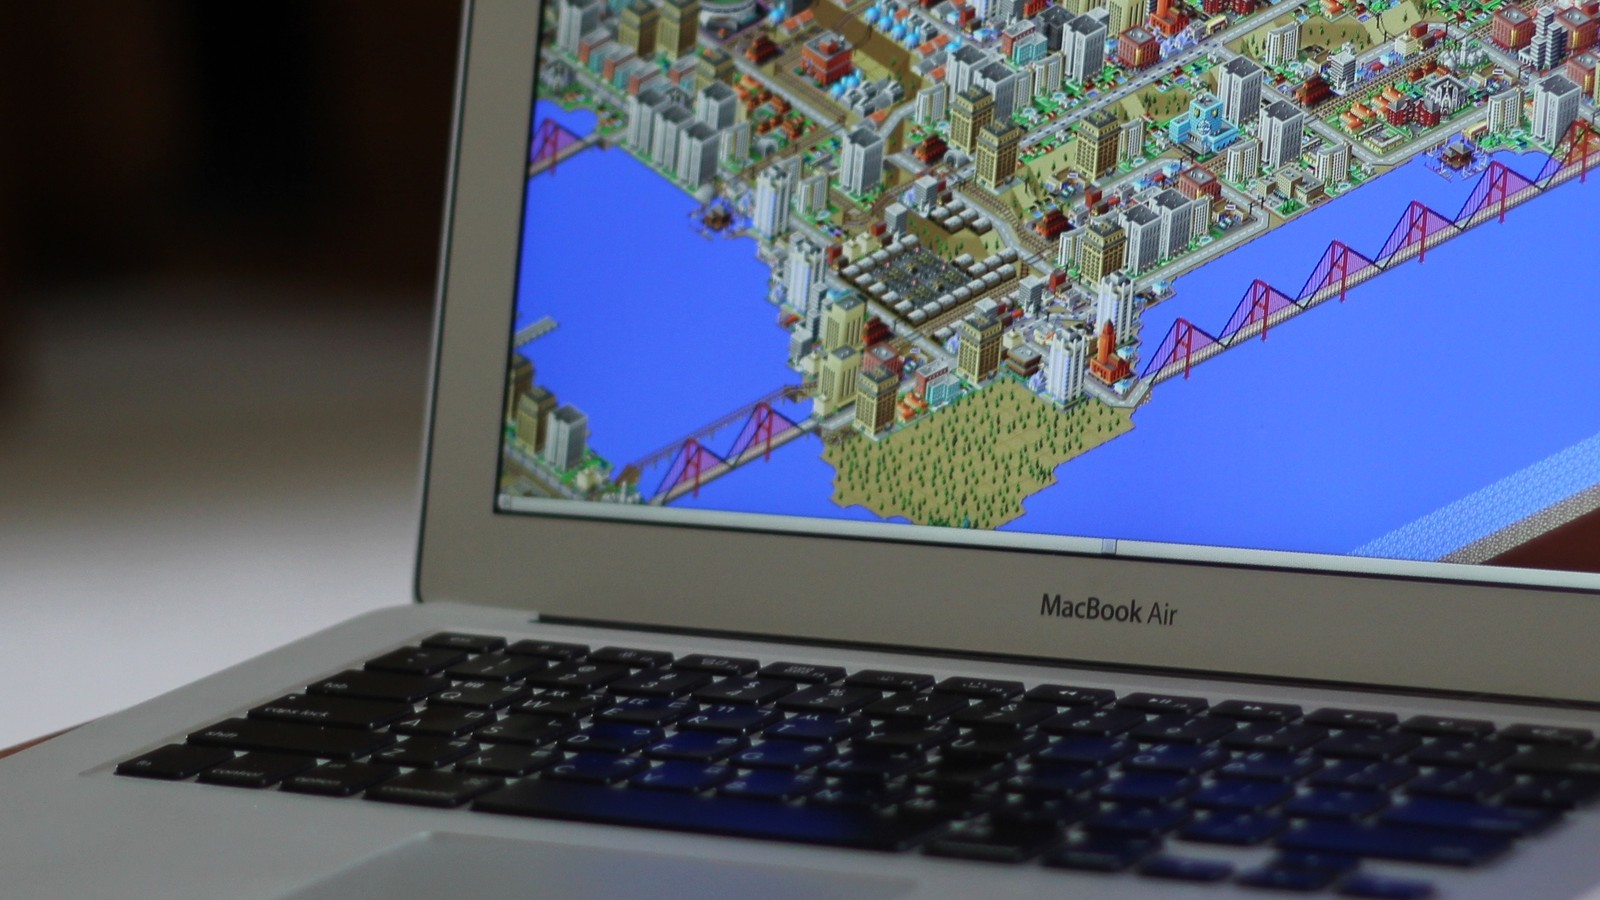 'You'll Regret This!' SimCity Developer Maxis Is Closing Down